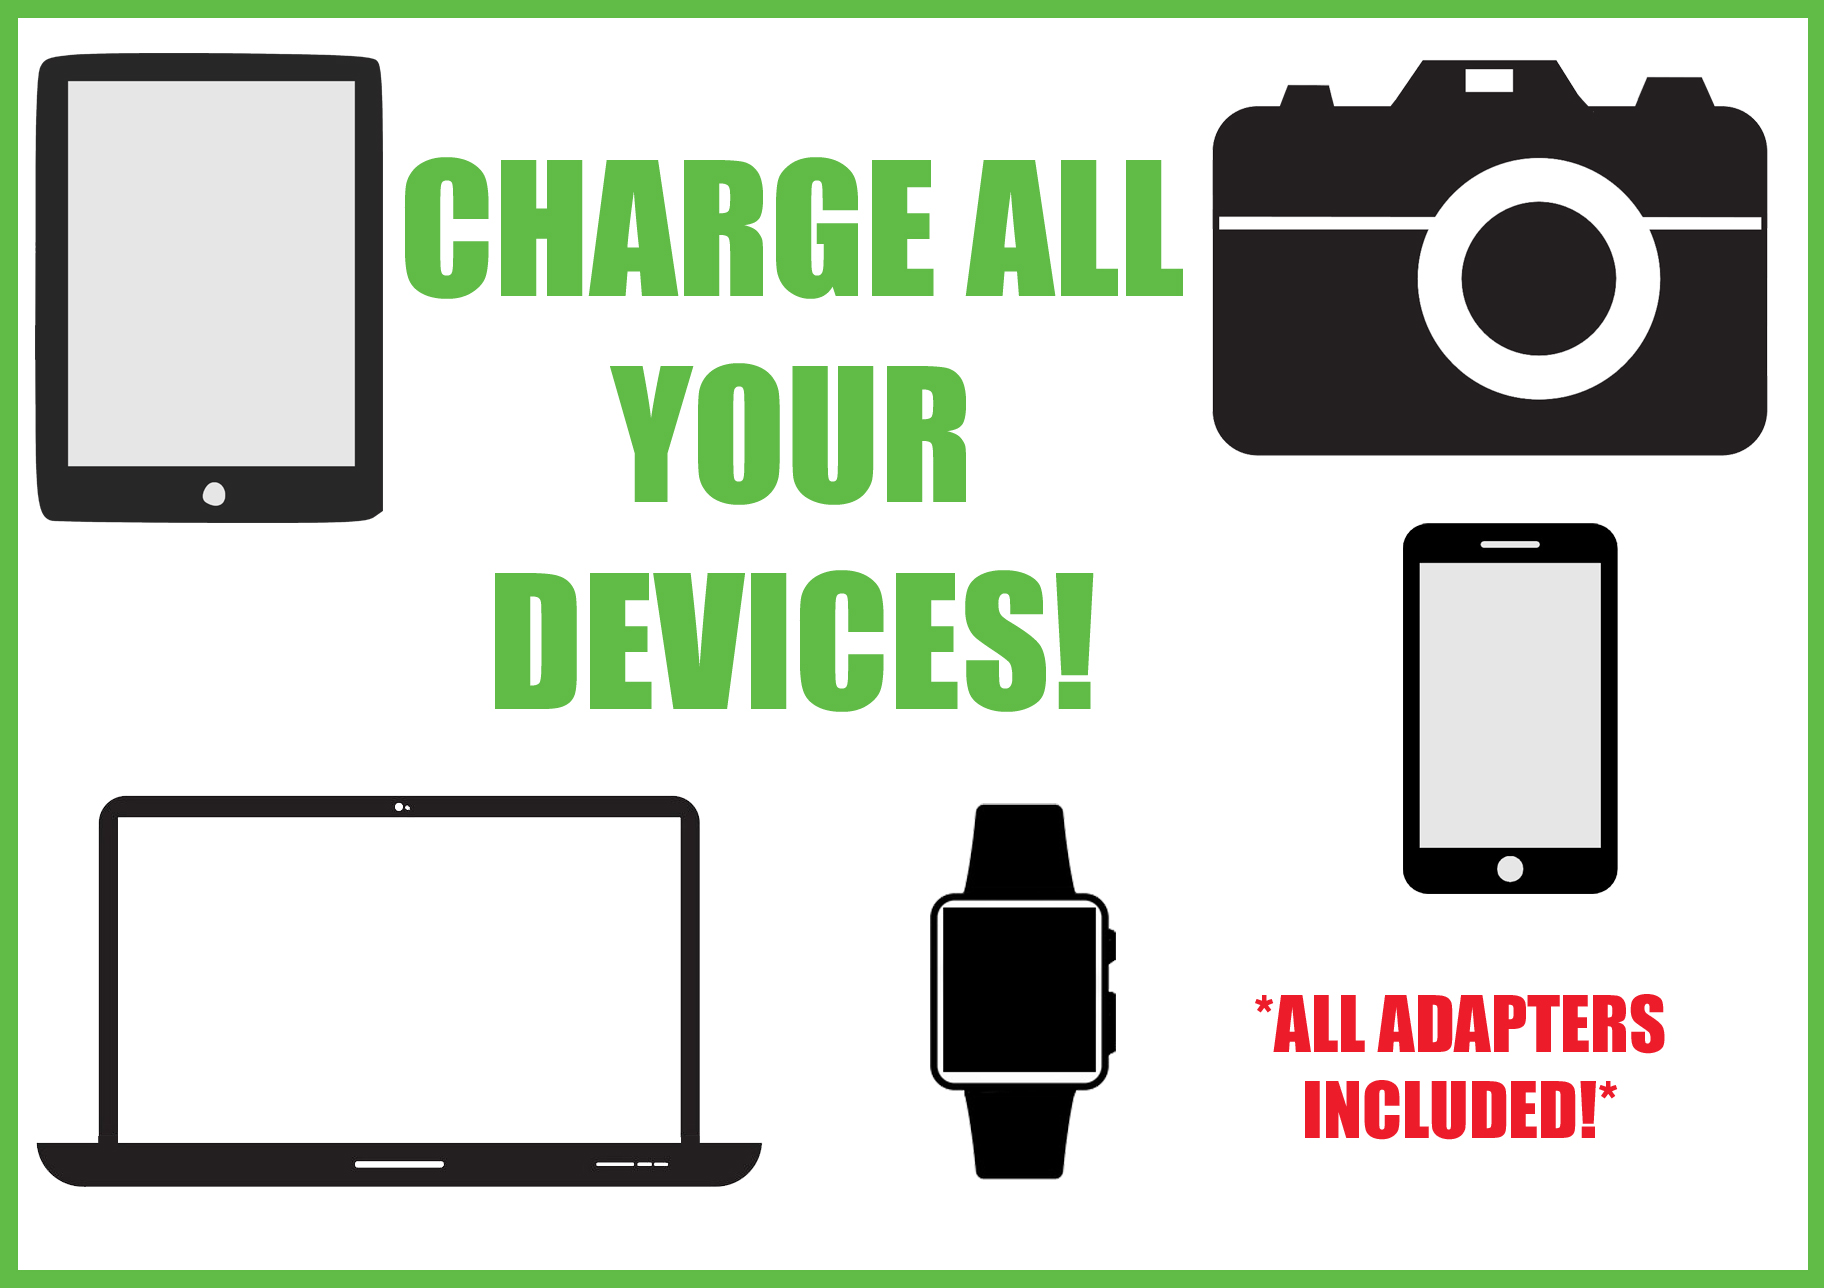 CHARGE DEVICES